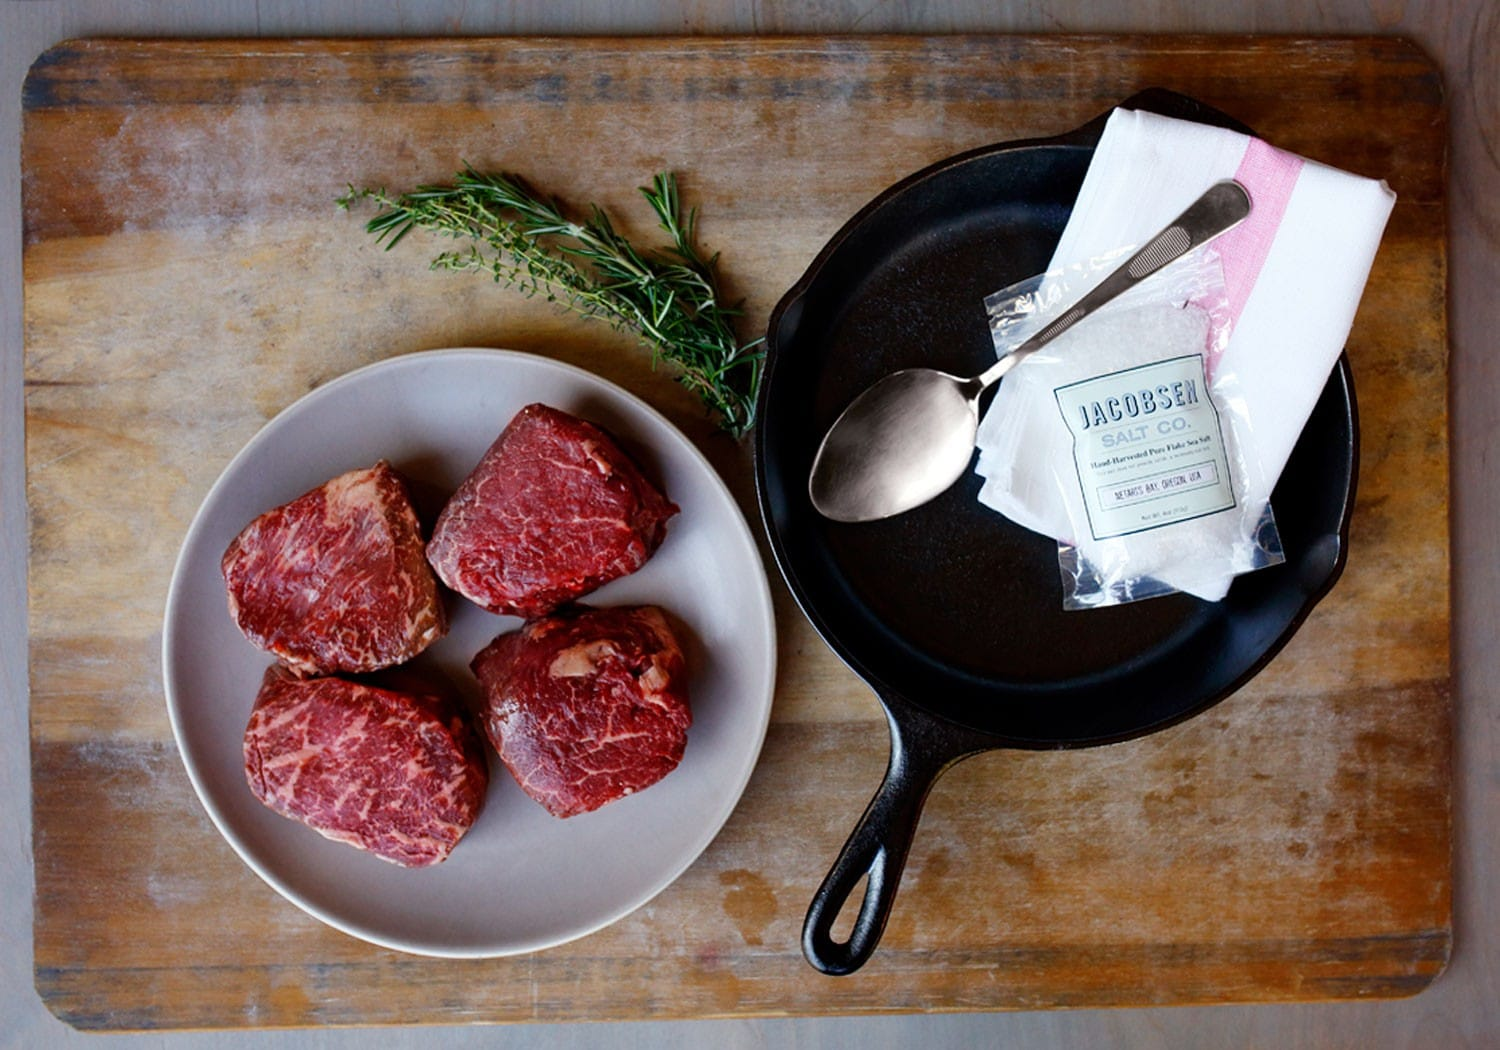 Snake River Farms steaks meats delivery service. Mail order steaks, ground beef, buffalo and more.